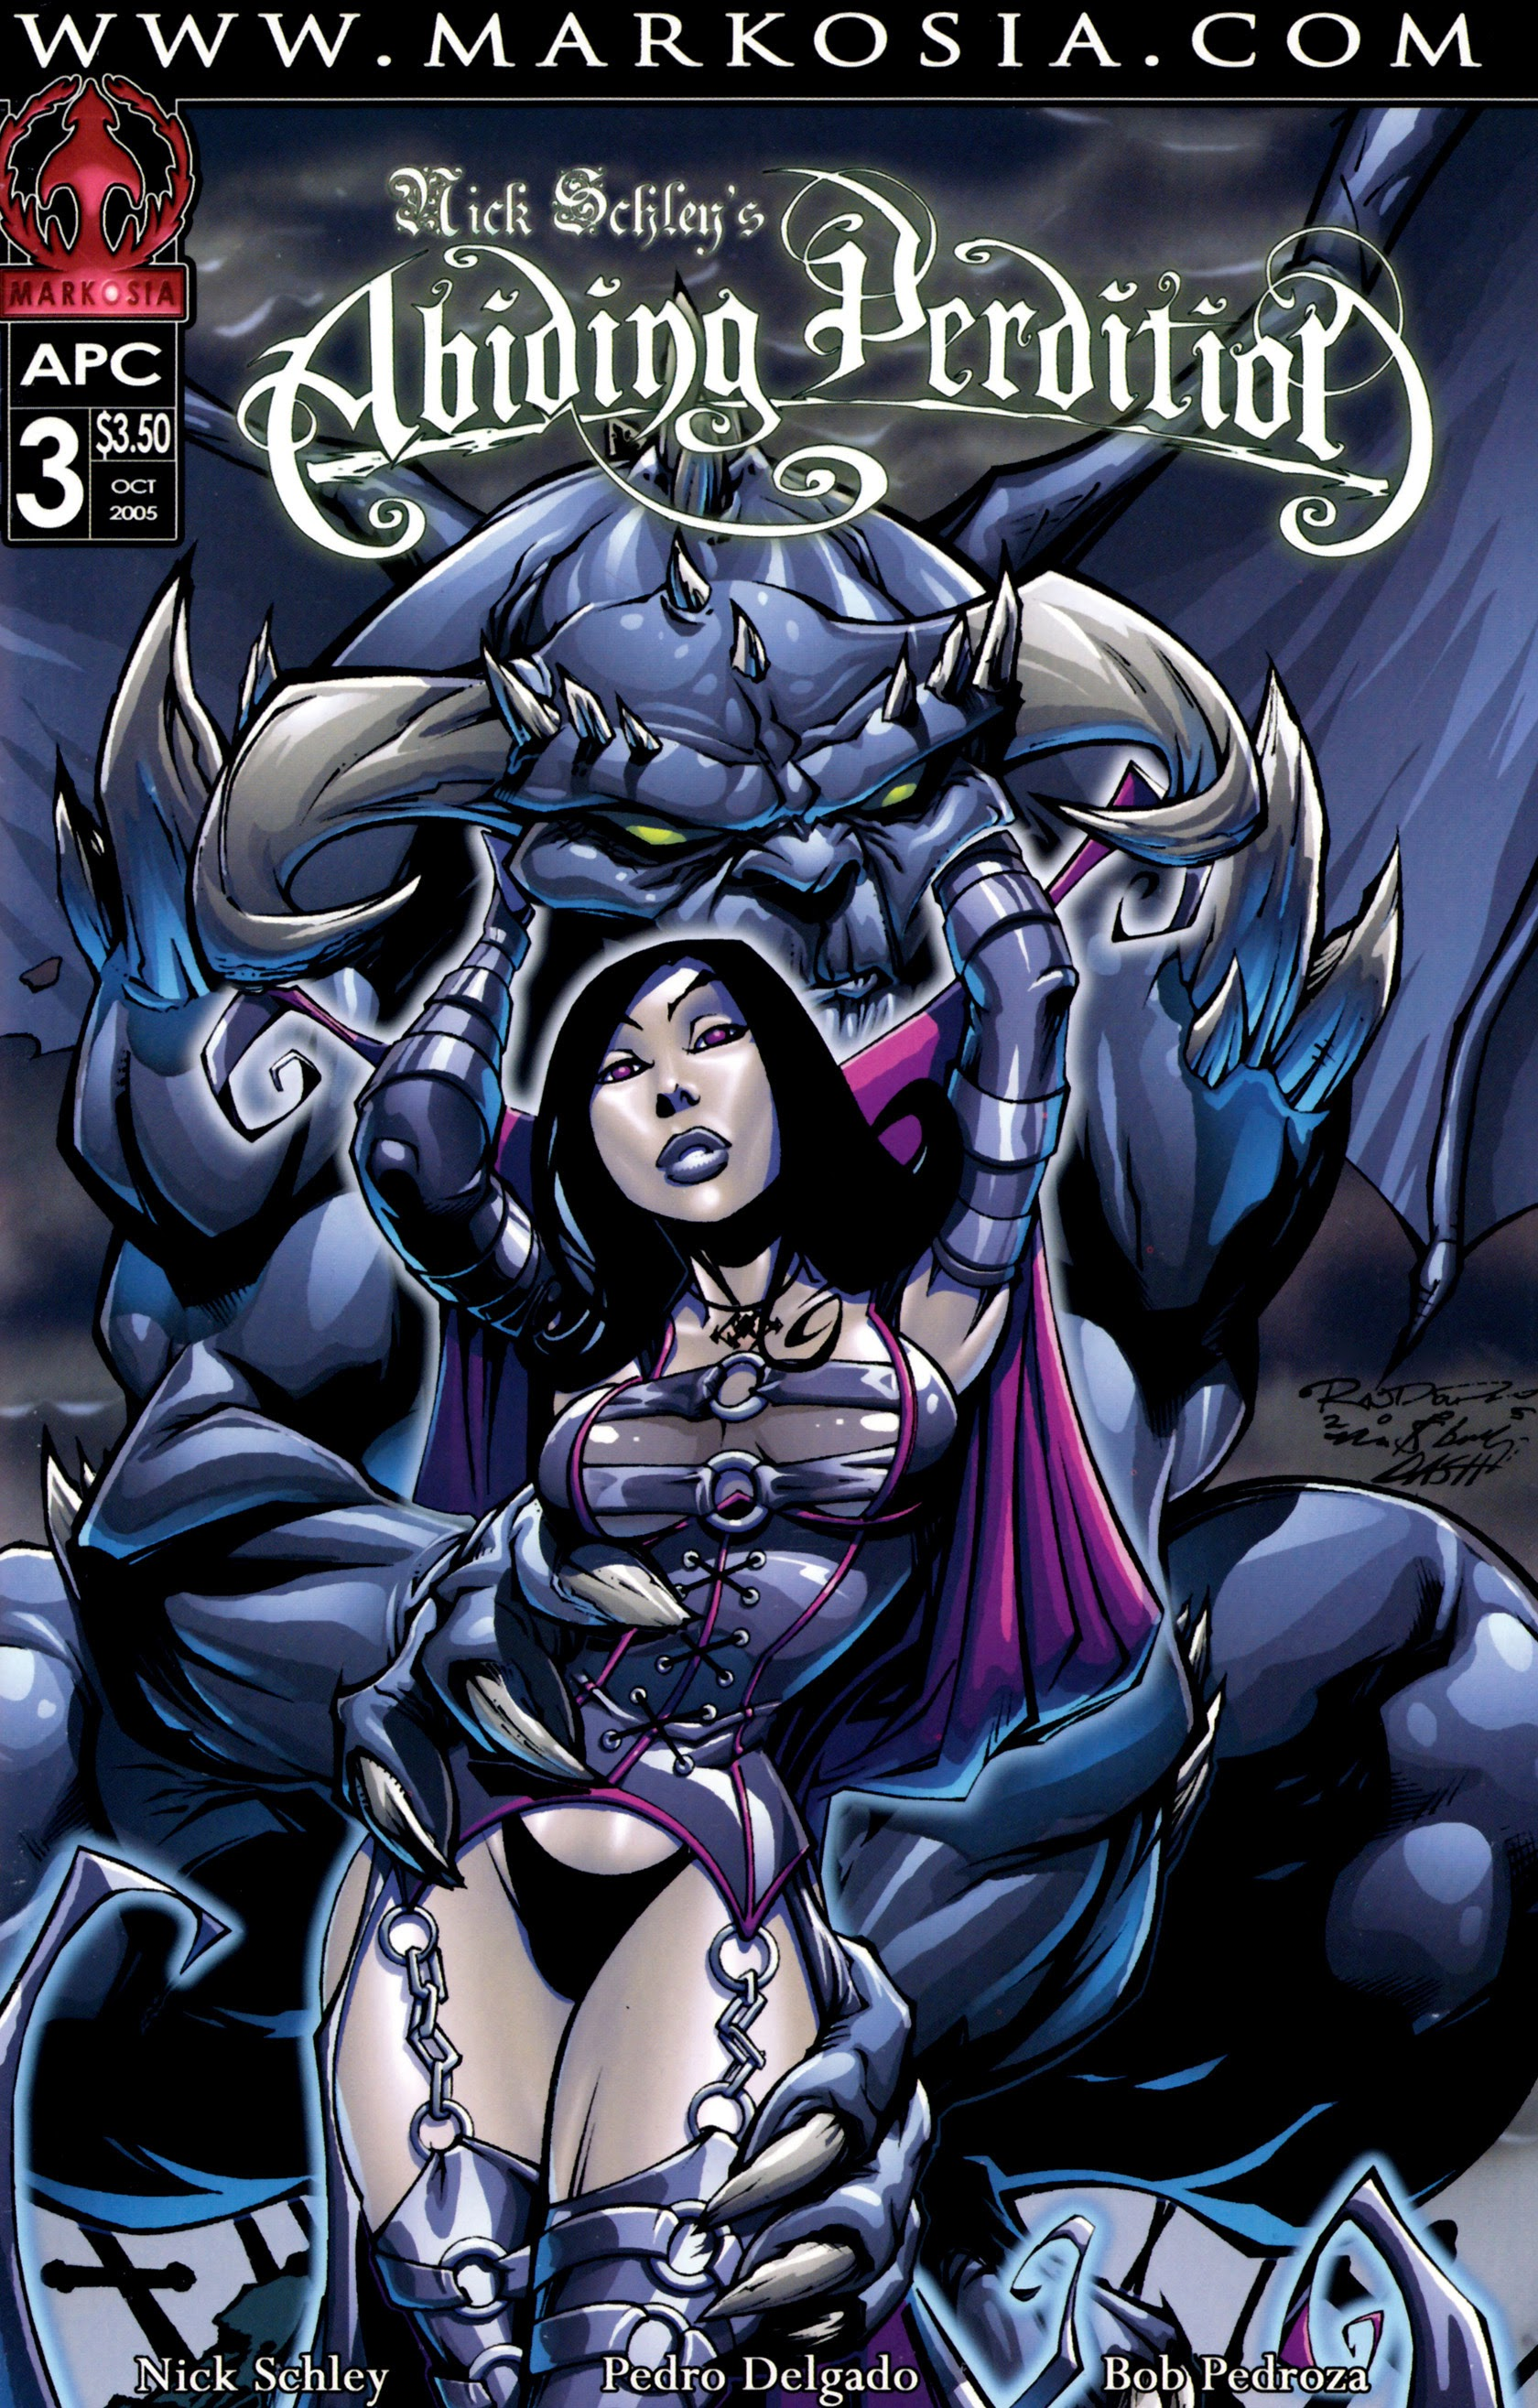 Read online Abiding Perdition comic -  Issue #3 - 2